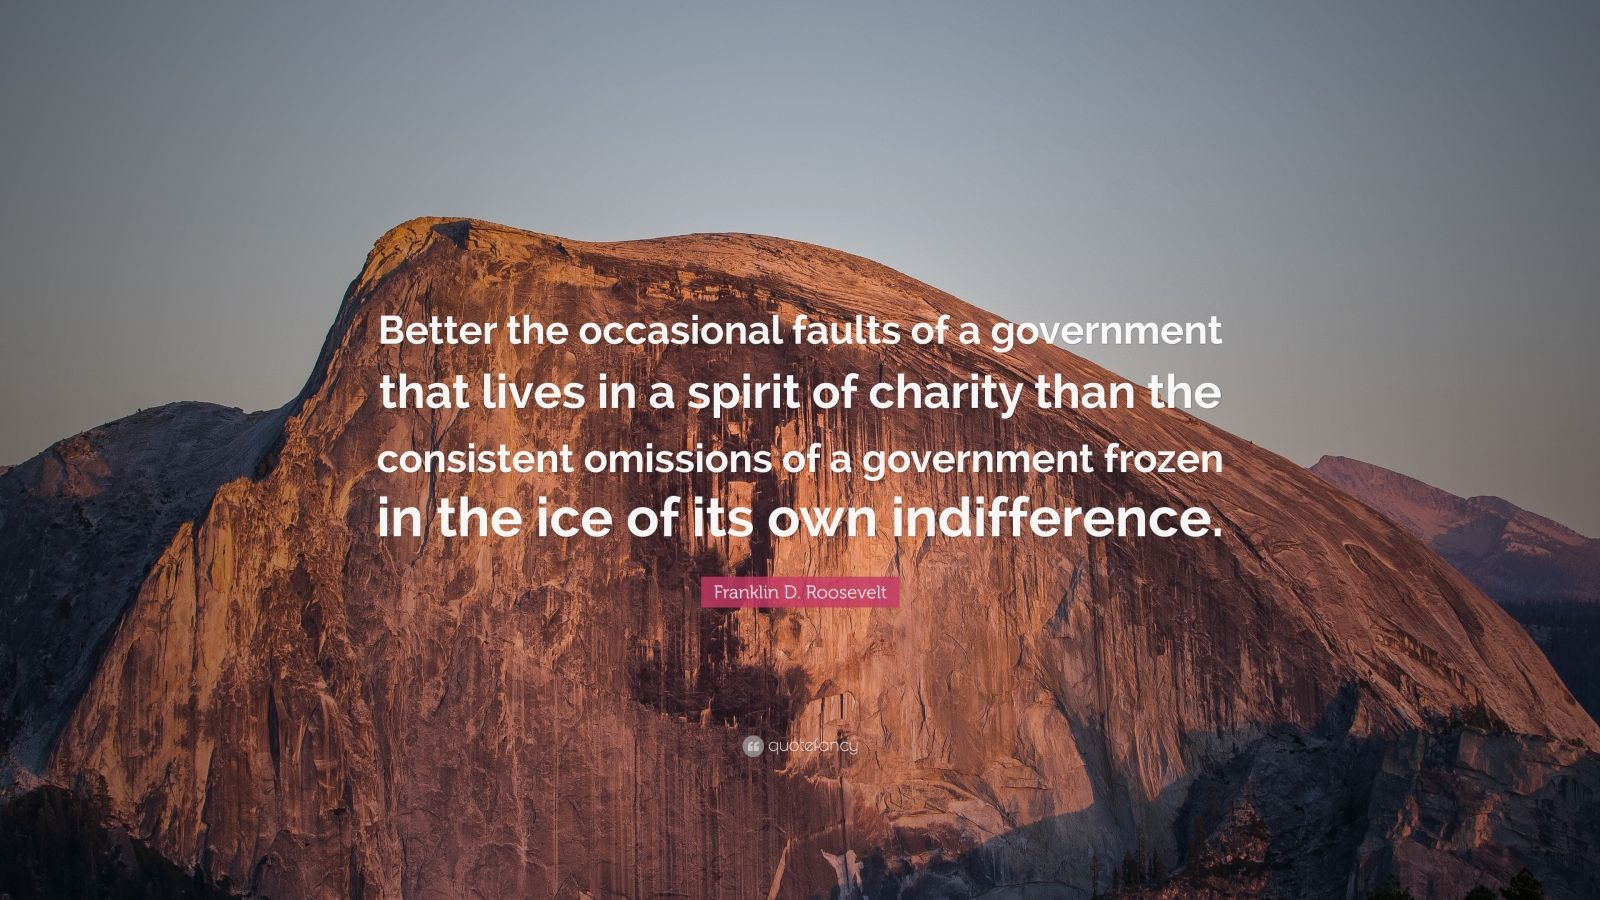 """Franklin D. Roosevelt Quote: """"Better the occasional faults of a government that lives in a spirit of charity than the consistent omissions of a government frozen in the ice of its own indifference."""""""